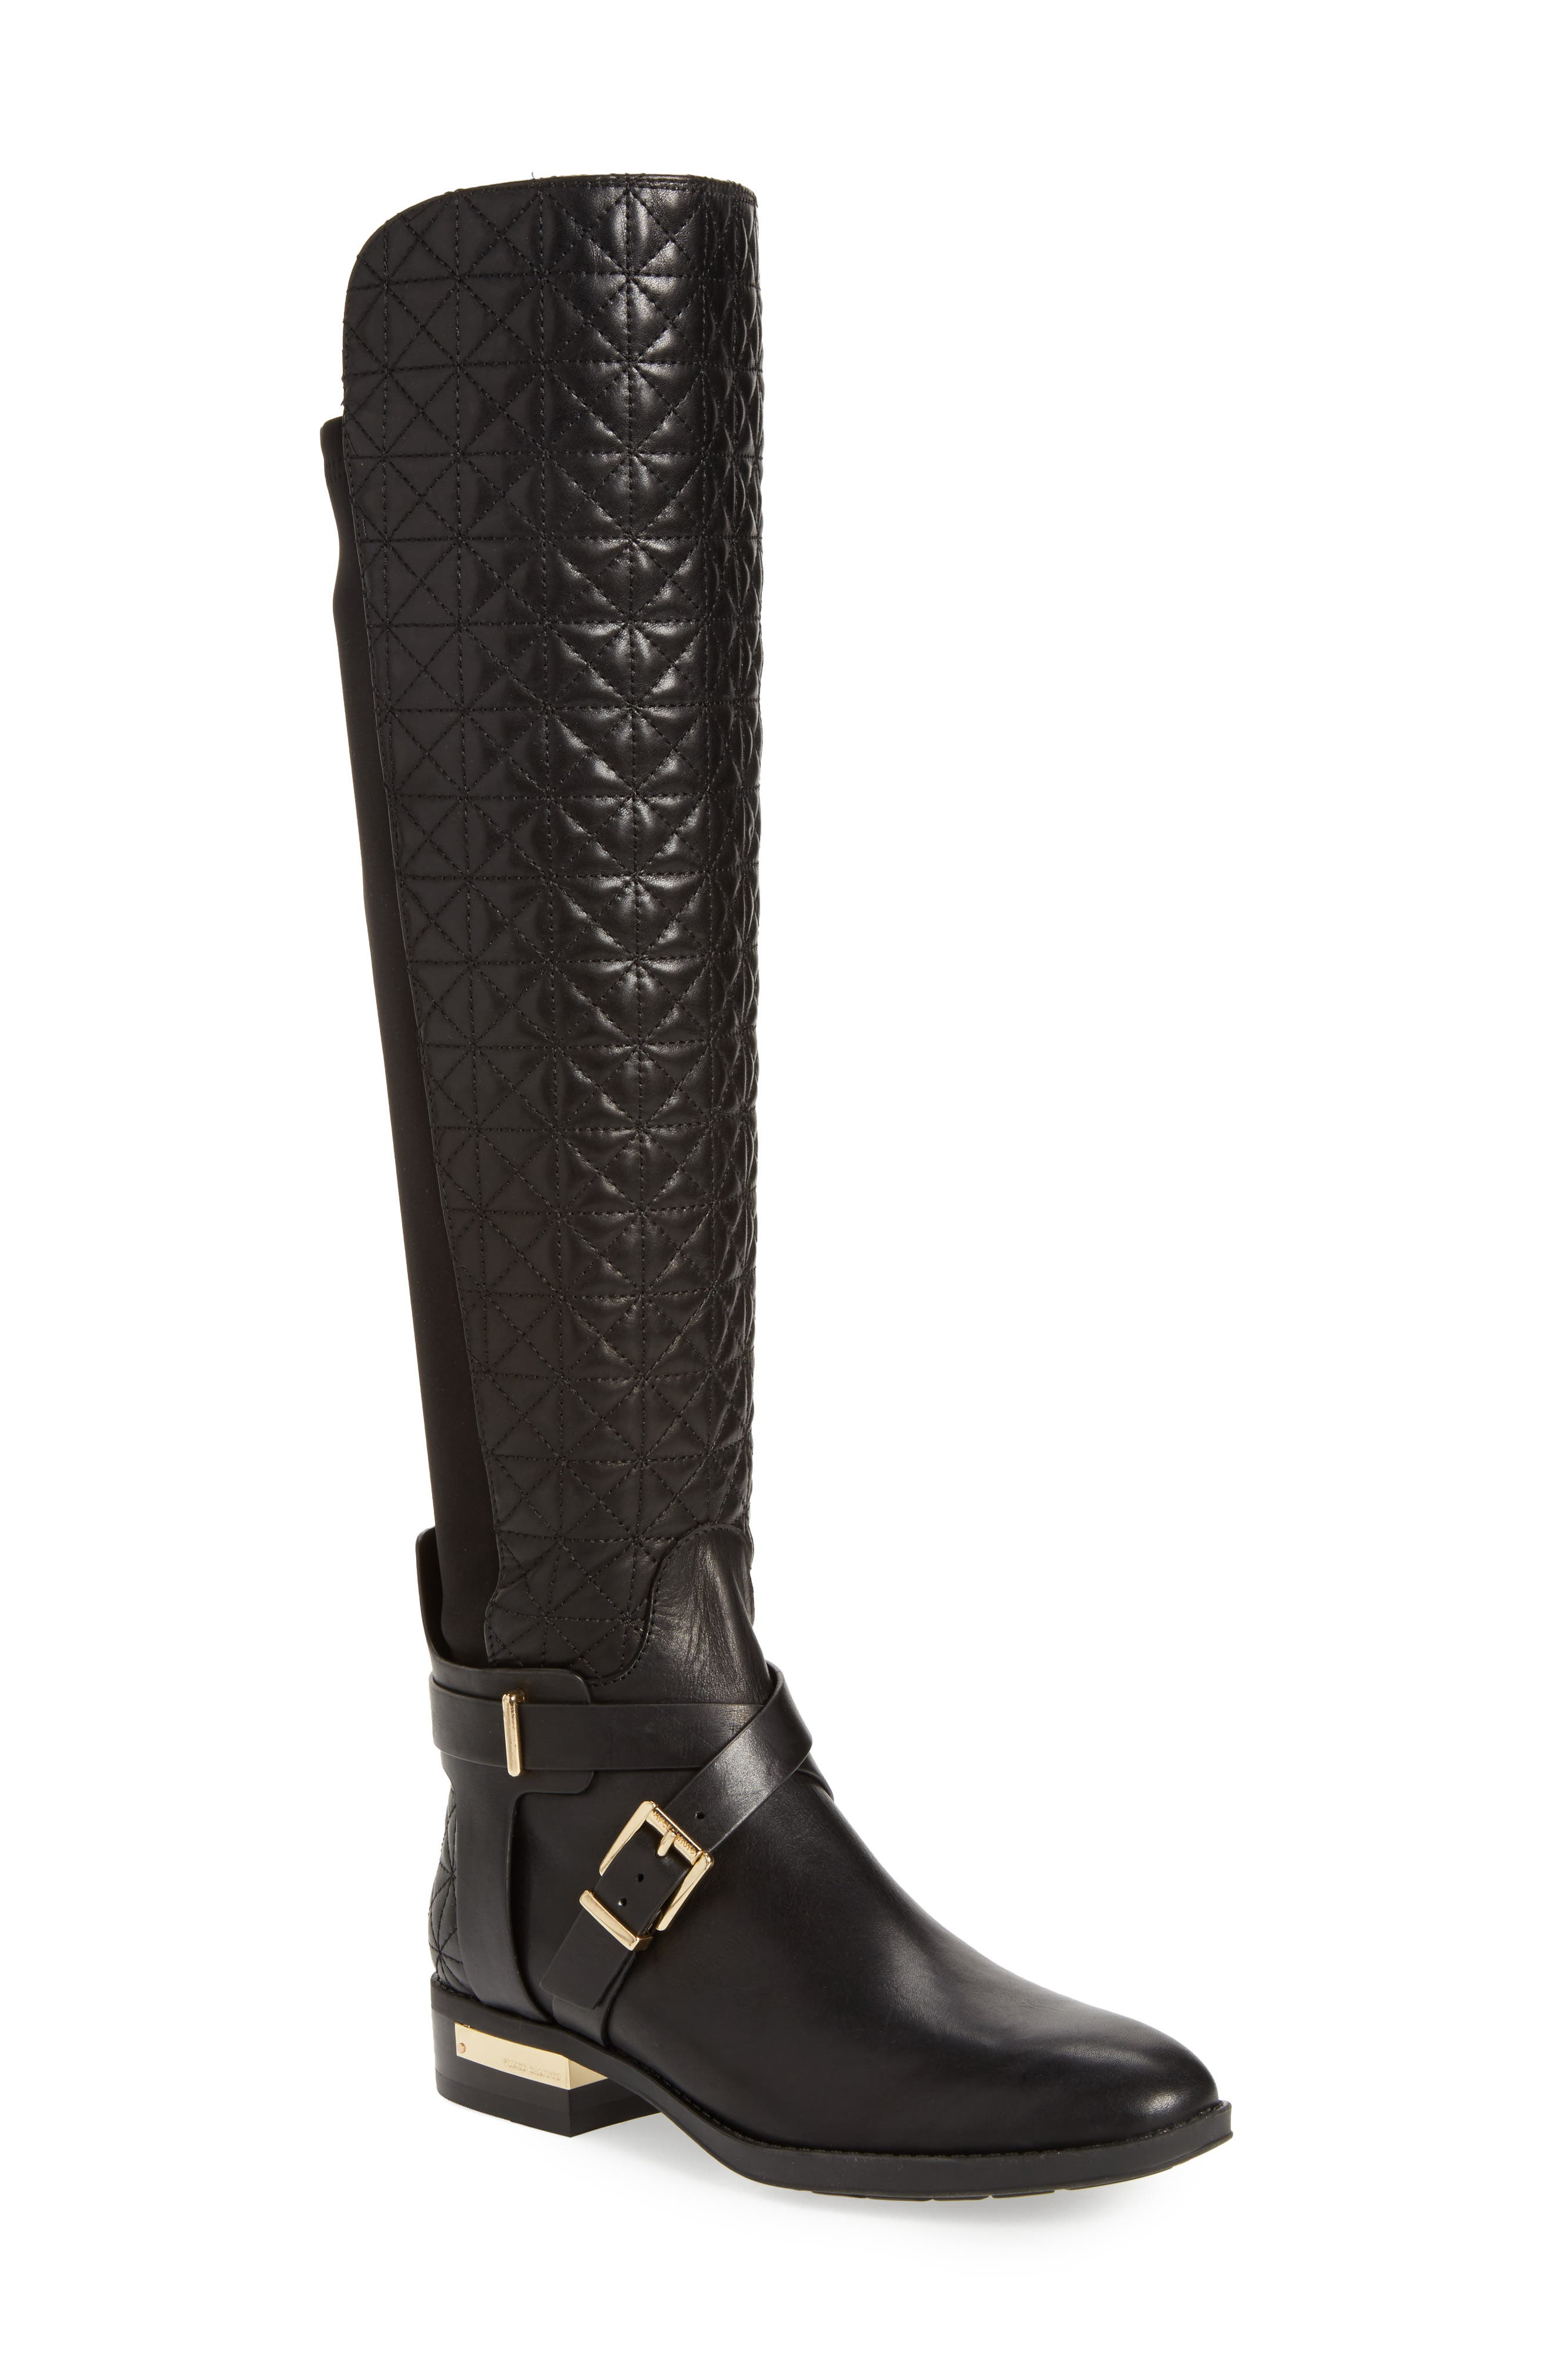 Main Image - Vince Camuto Patira Over the Knee Boot (Women)